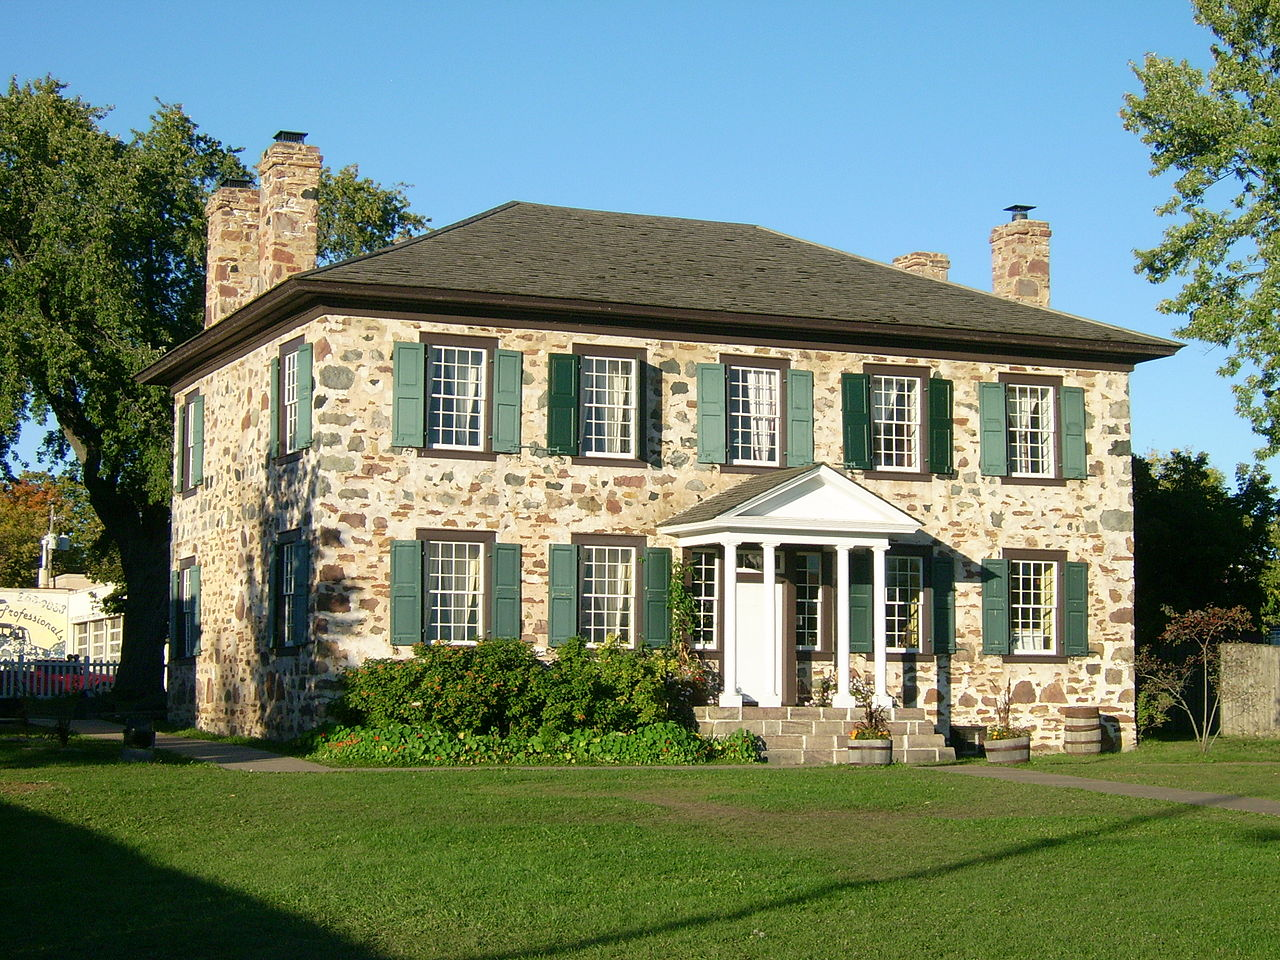 File ermatinger old stone house 3 jpg wikimedia commons for The classic house